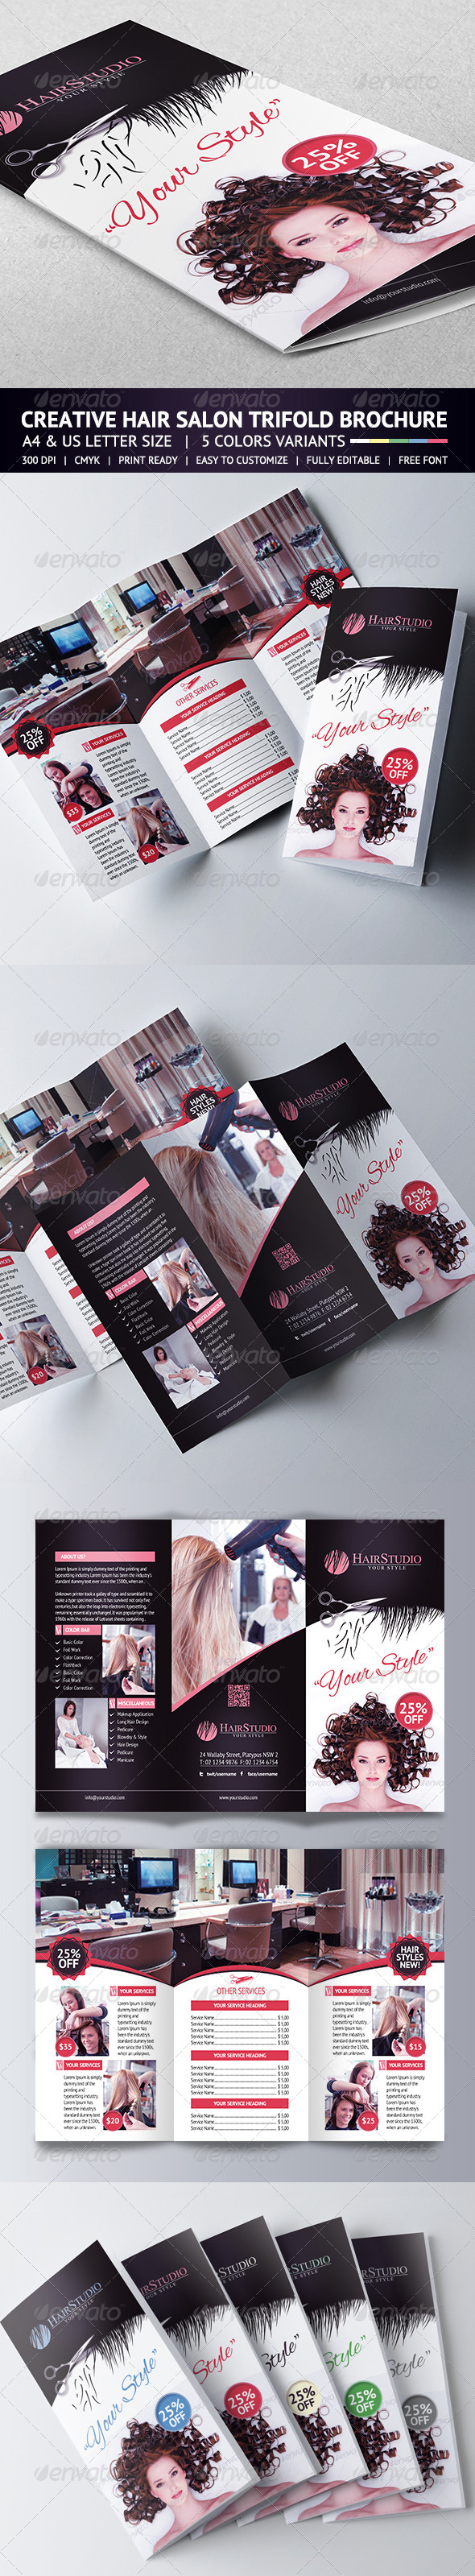 GraphicRiver Hair Salon Trifold Brochure 5747895